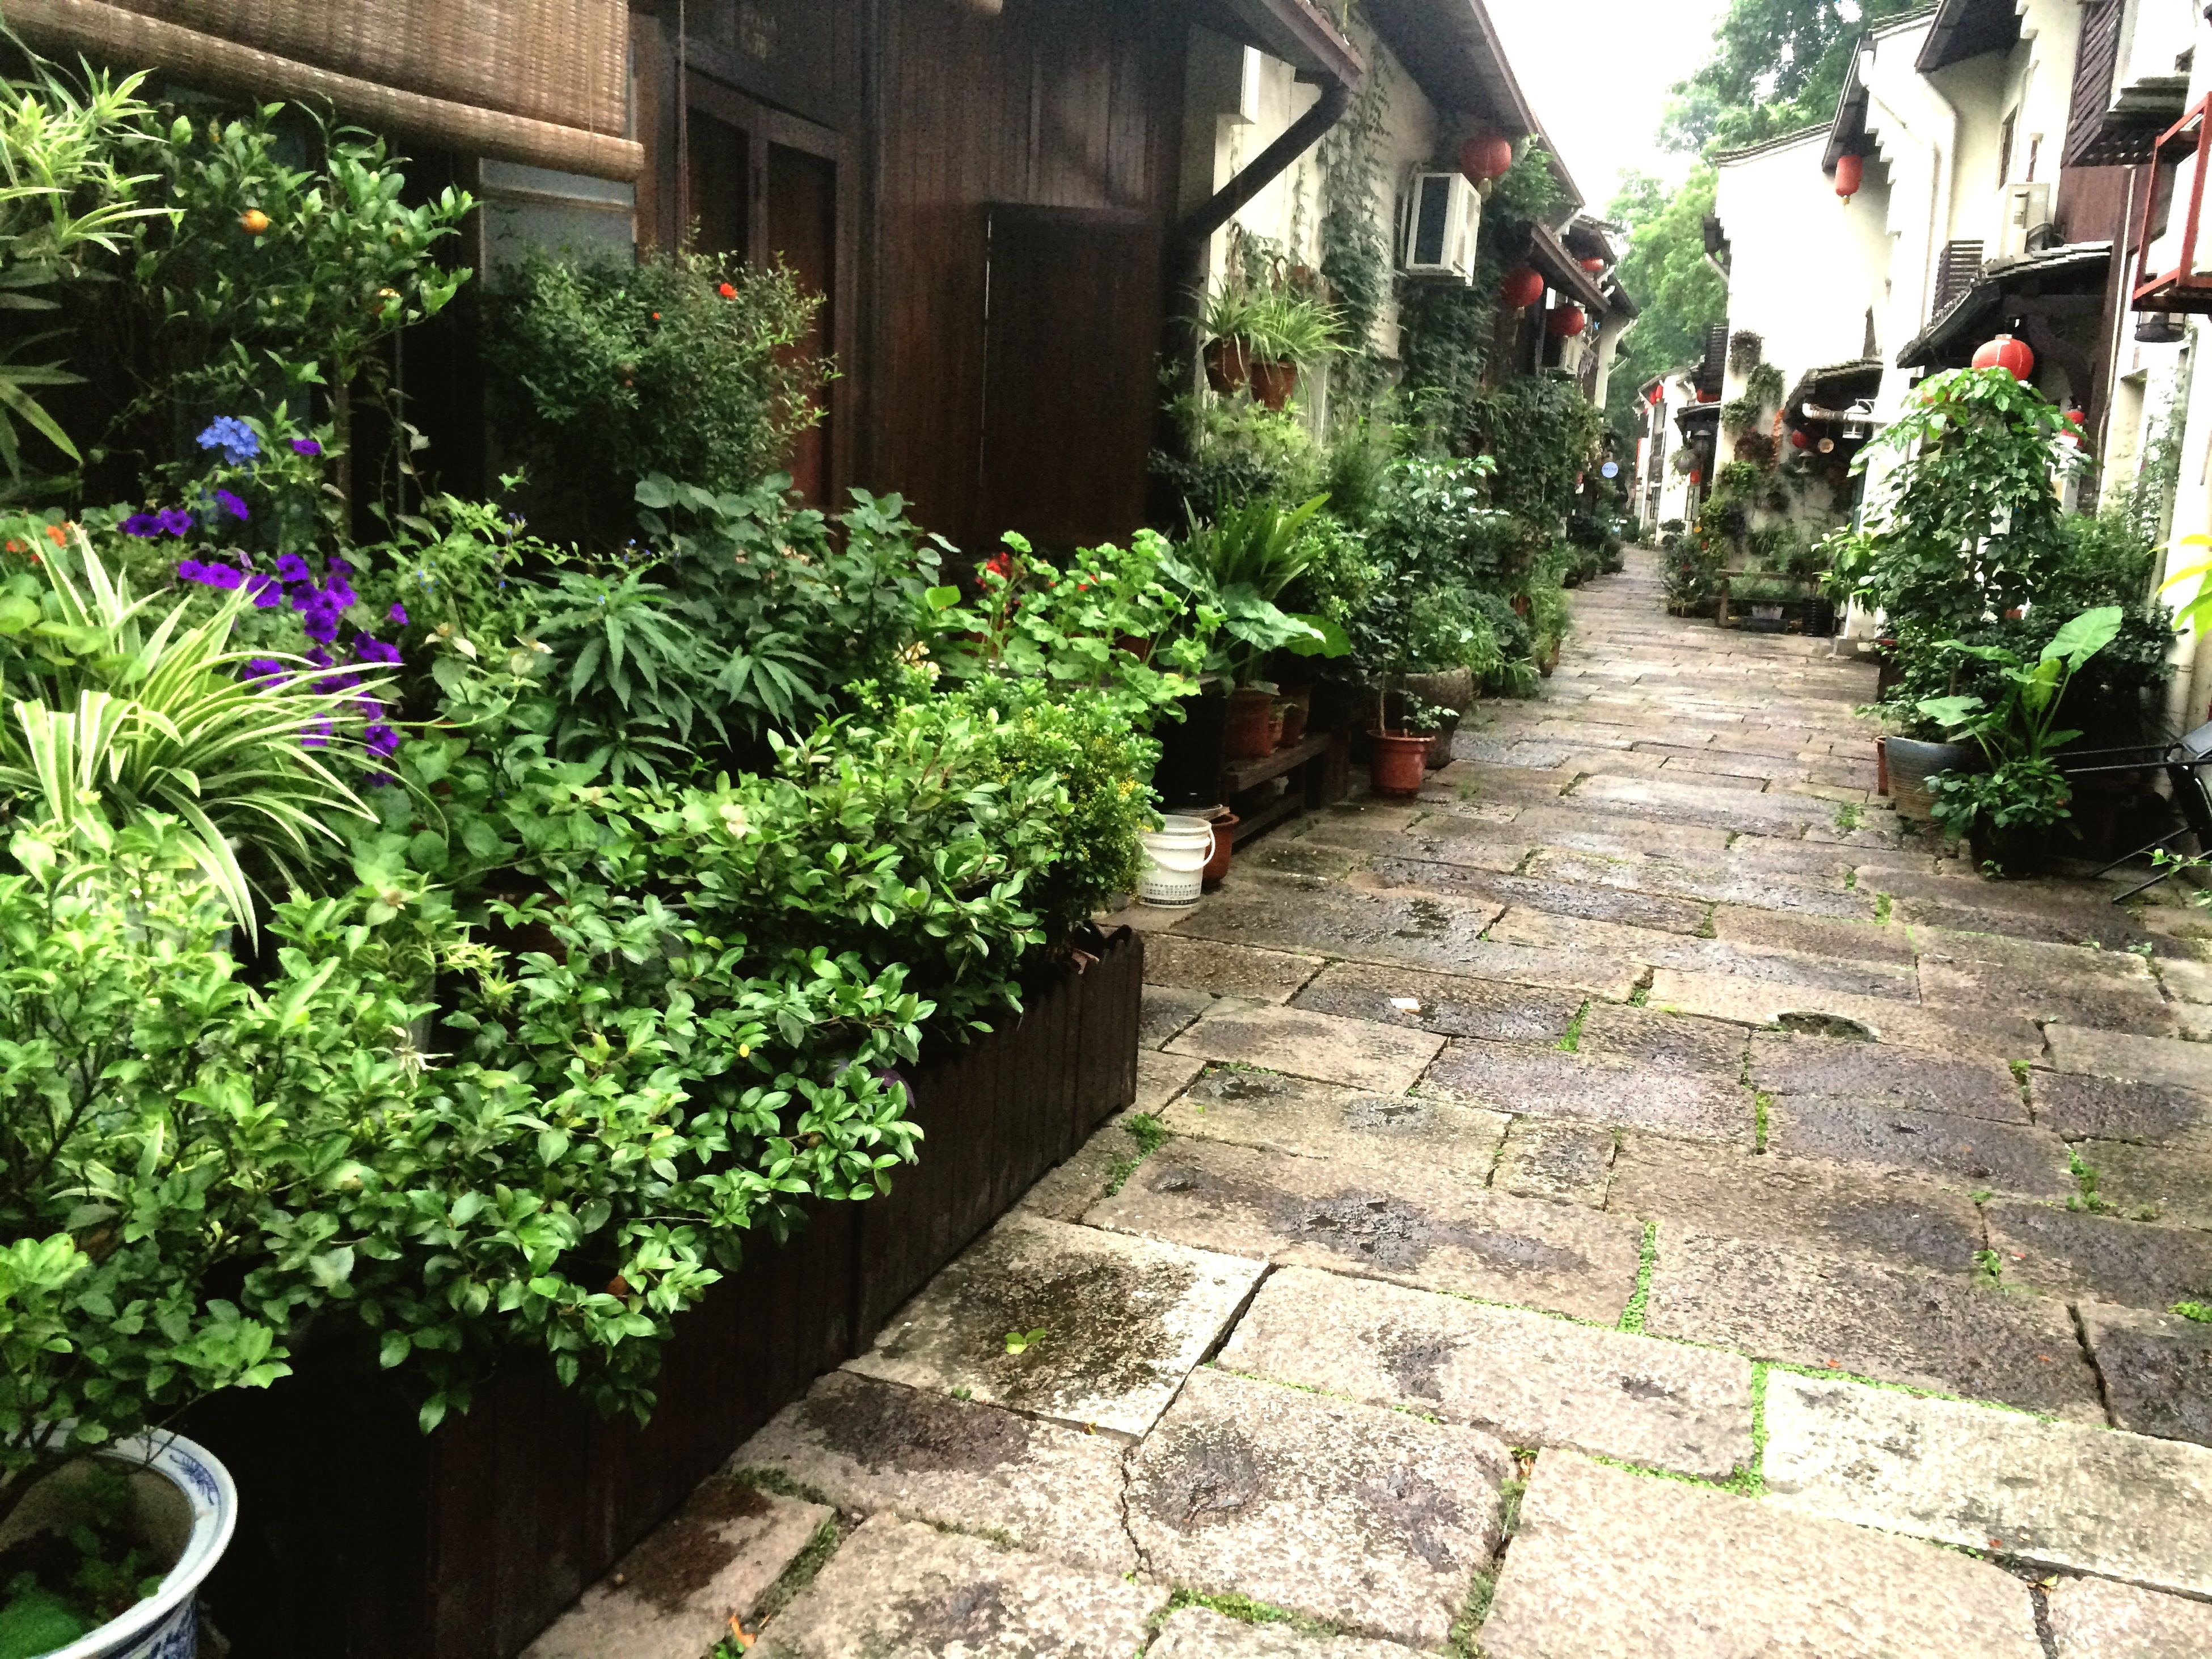 built structure, architecture, plant, building exterior, growth, potted plant, house, tree, flower, green color, the way forward, formal garden, outdoors, cobblestone, day, wall - building feature, no people, steps, footpath, leaf